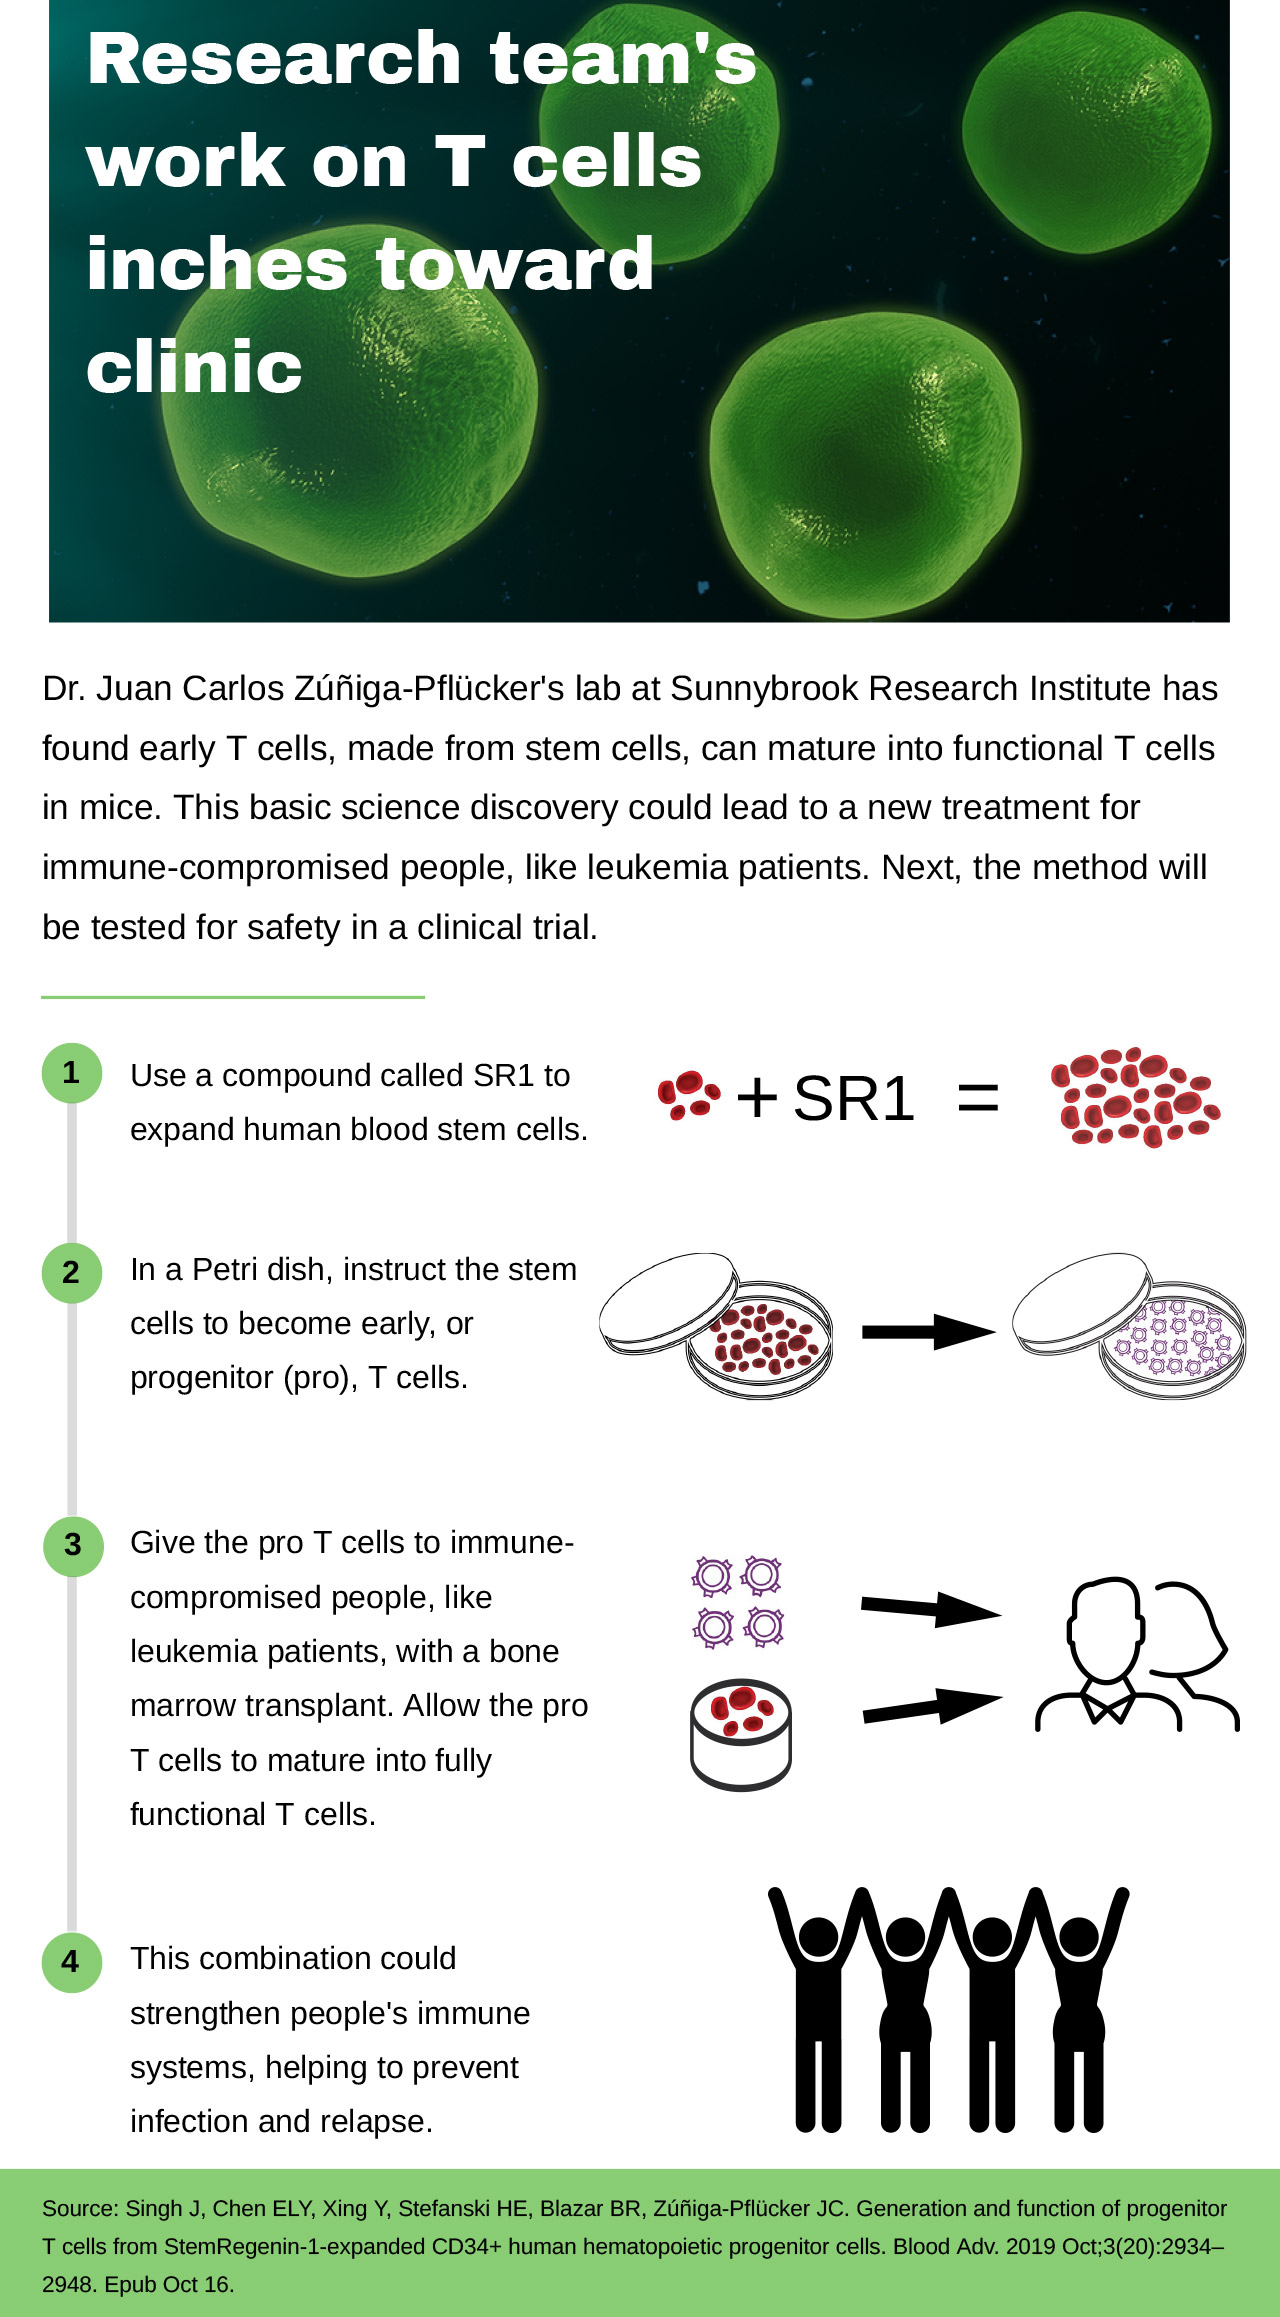 Infographic: Research team's work on T cells inches toward clinic